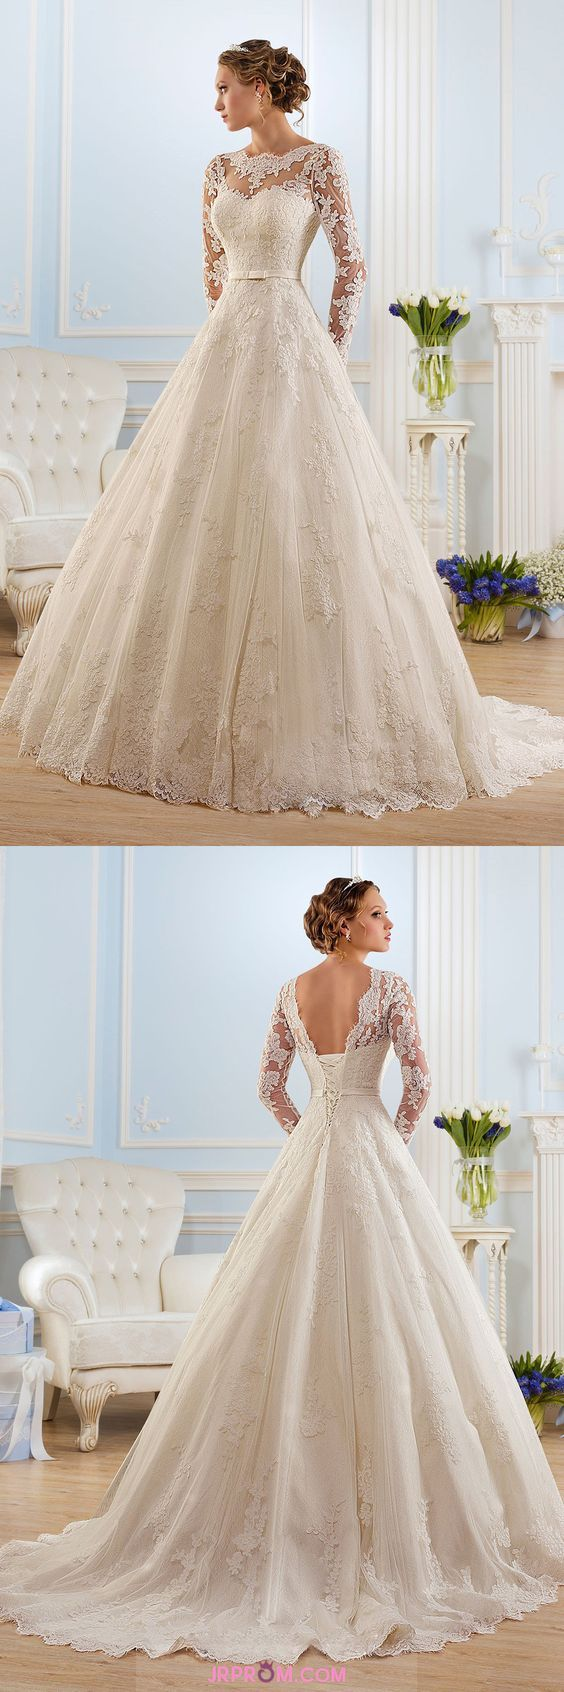 Tulle a line long sleeves wedding dresses scoop with applique and